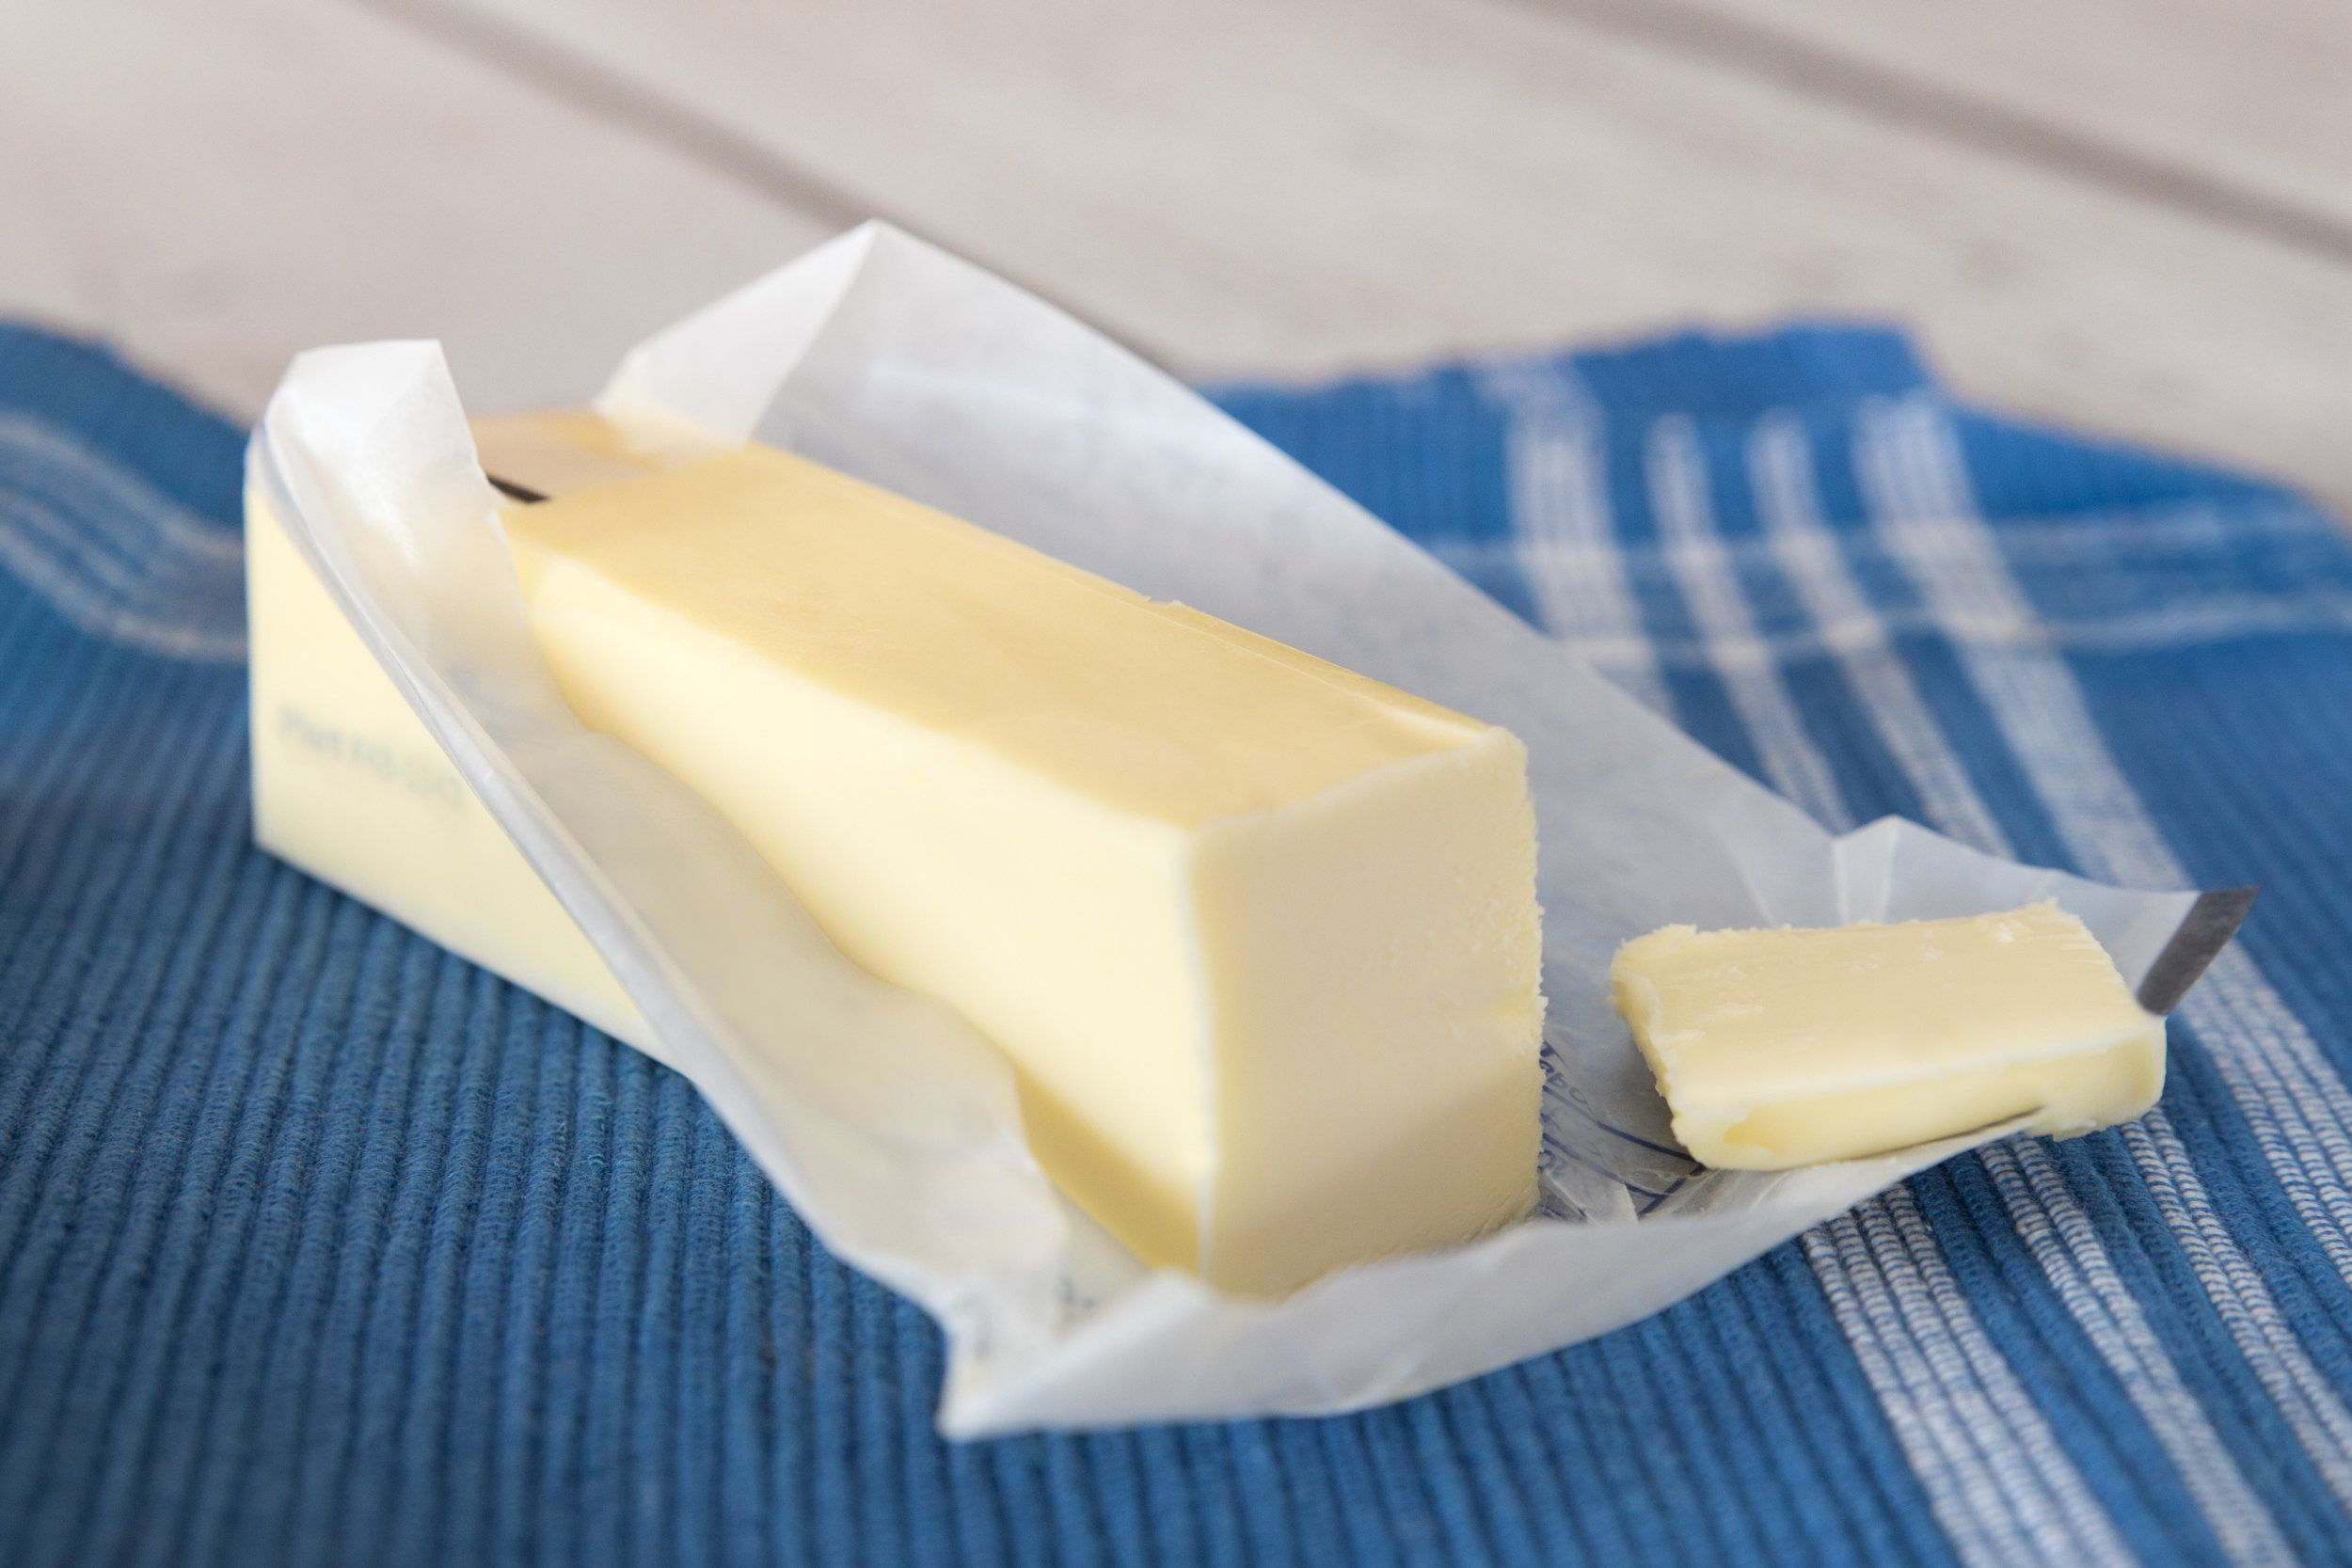 Butter And Salt Won't Increase Your Risk Of Heart Disease, Says Top